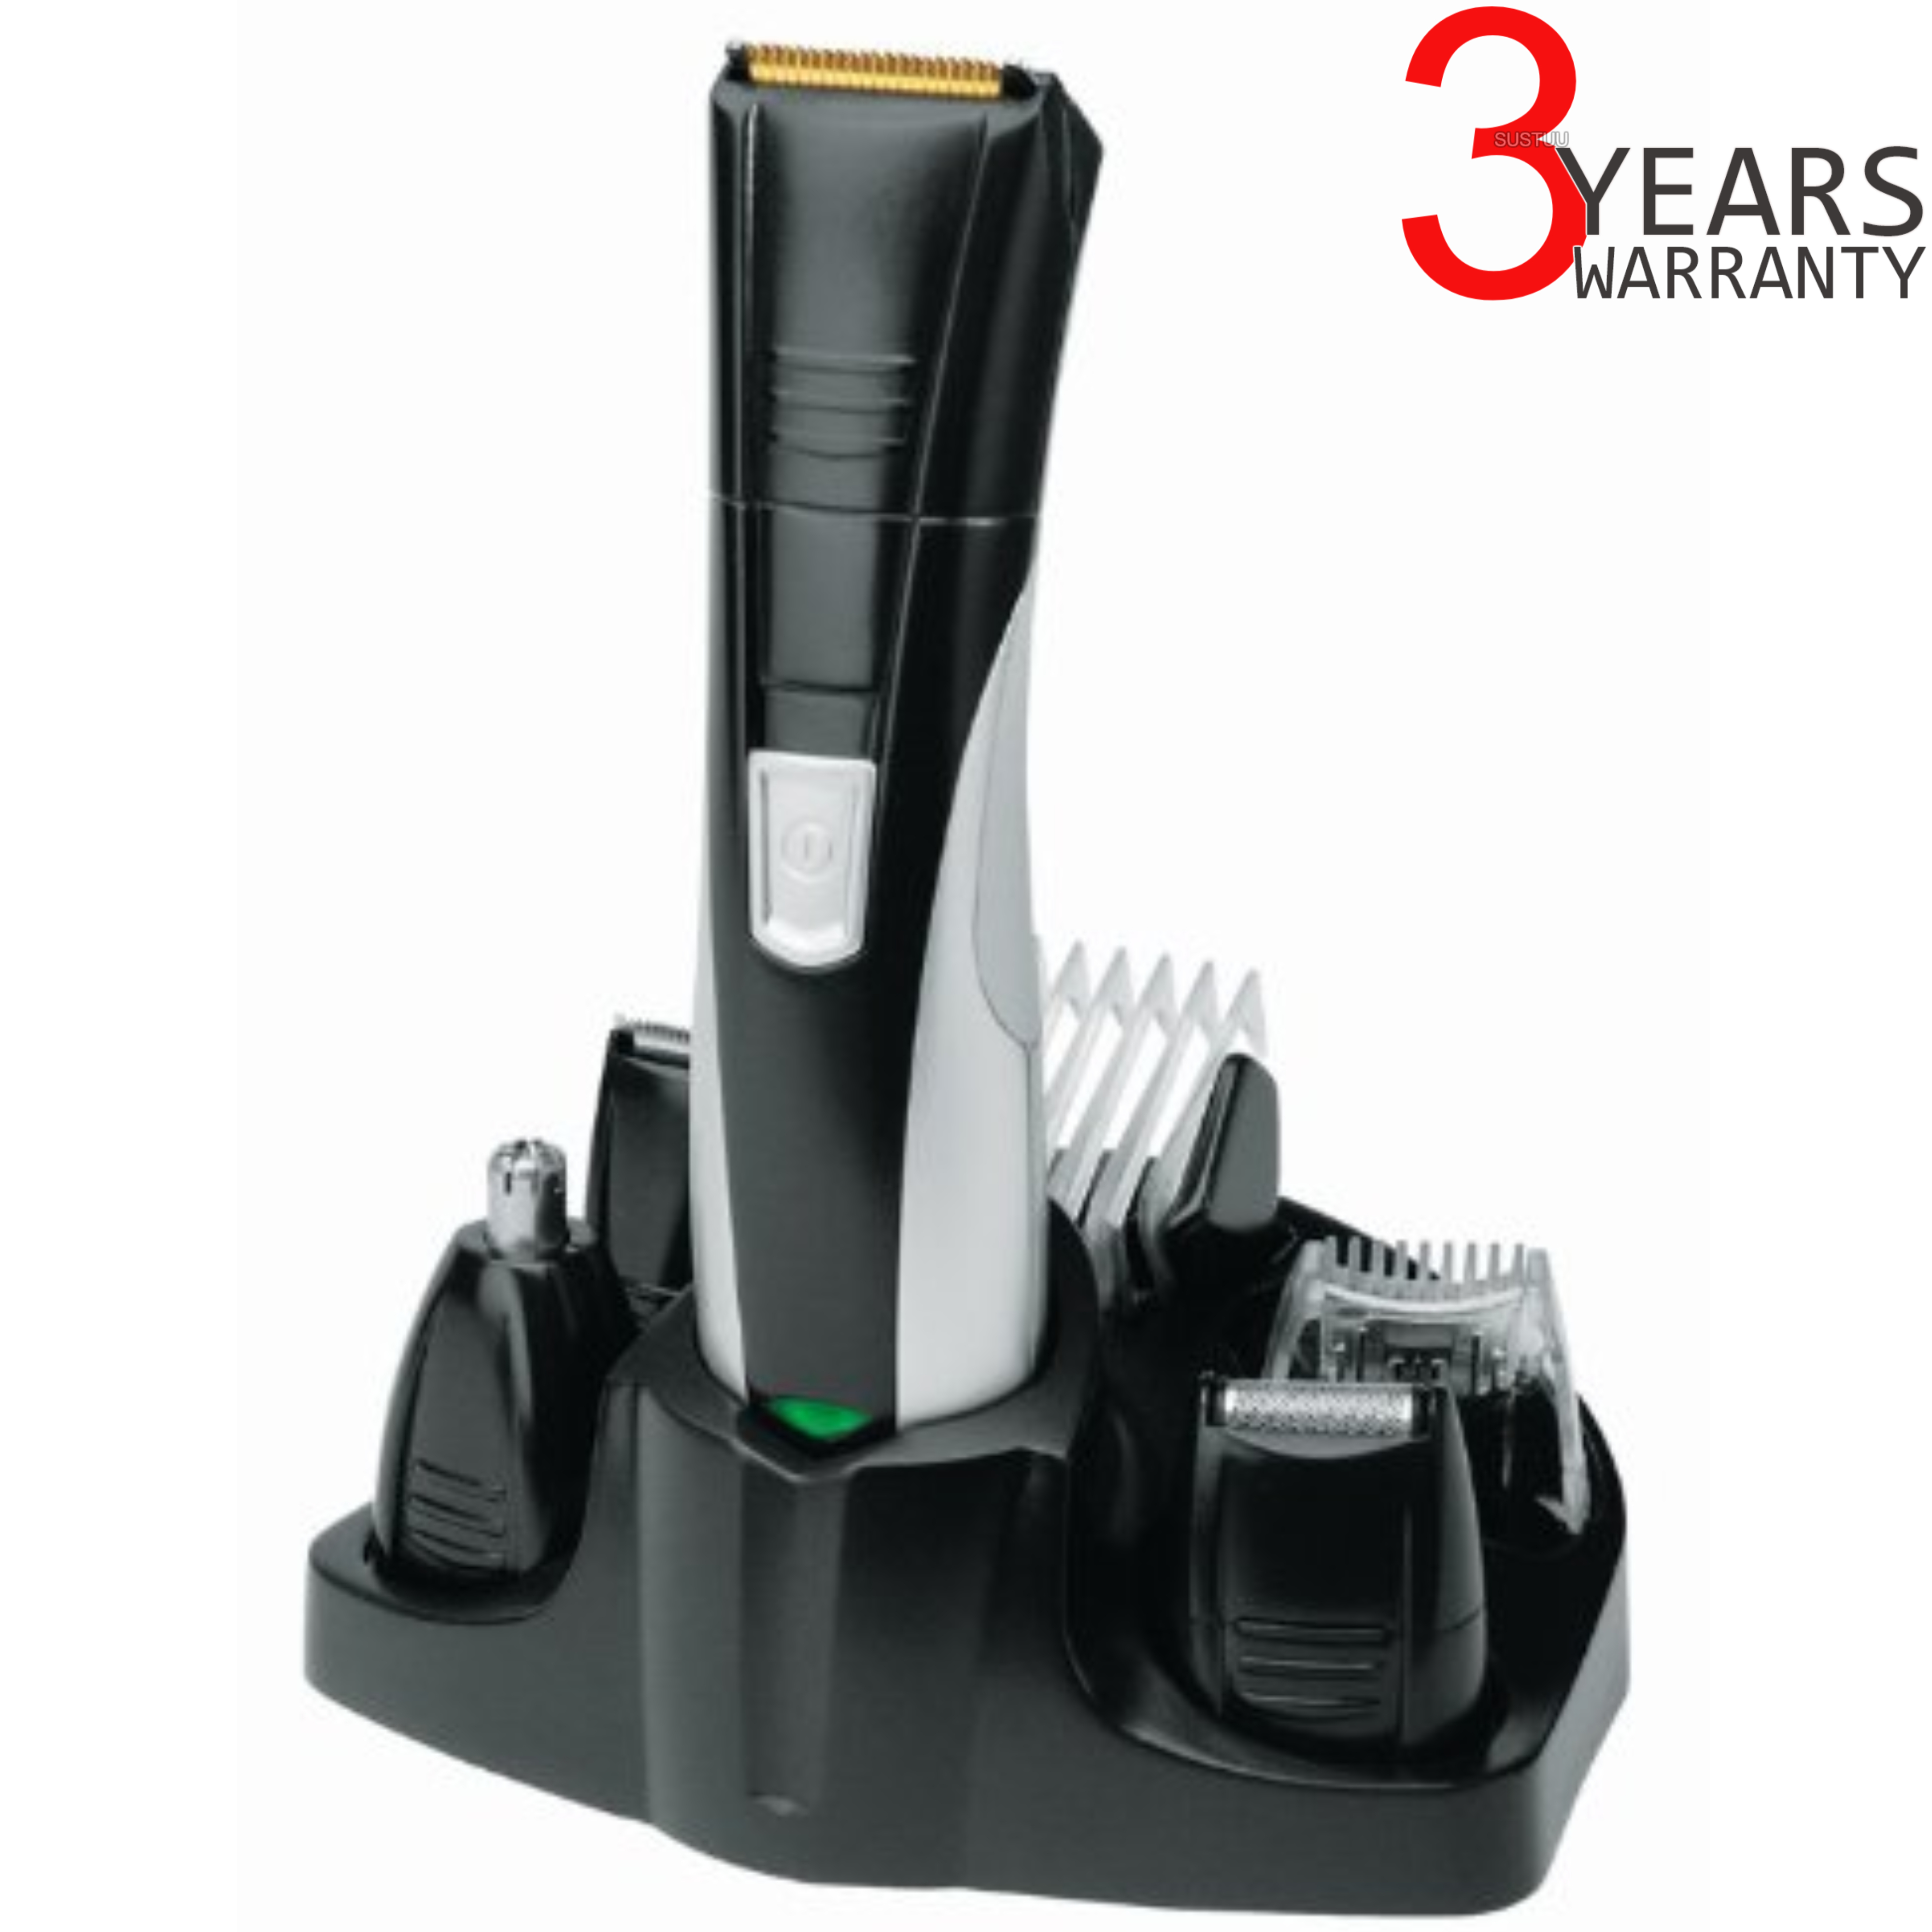 Remington PG350 Rechargeable Nose Nasal Hair Ear Trimmer Shaver Grooming Kit?NEW